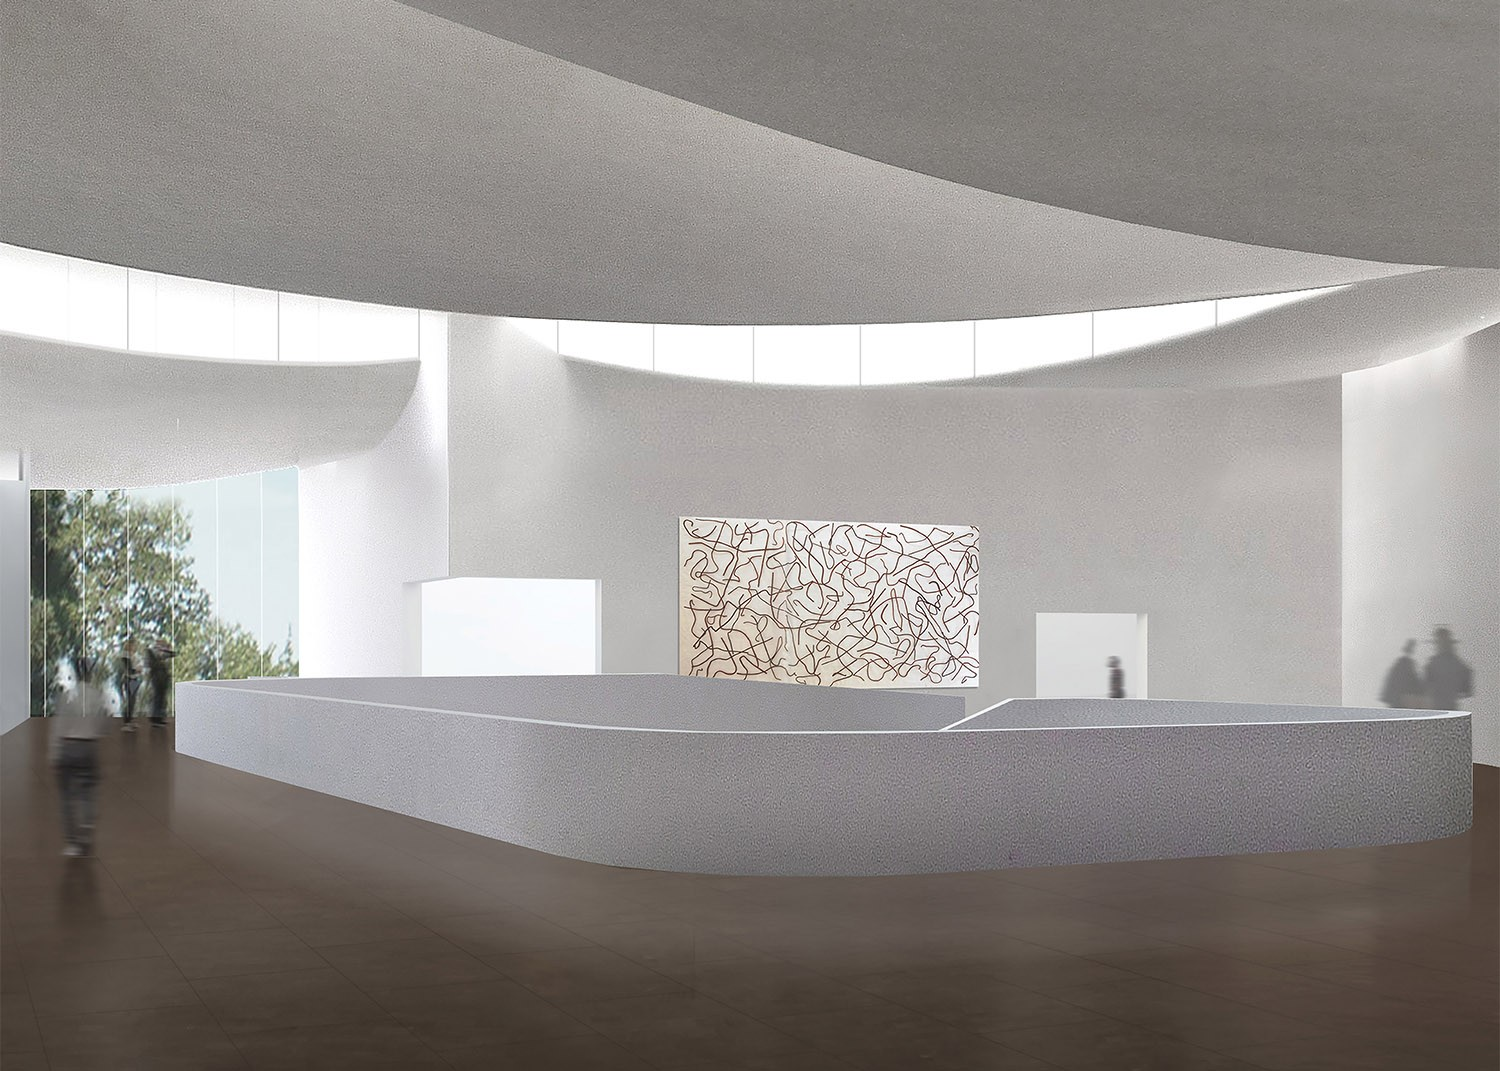 https://stevenholl.sfo2.digitaloceanspaces.com/uploads/projects/project-images/SHA_Kinder_ForumUpperFloorRender.jpg